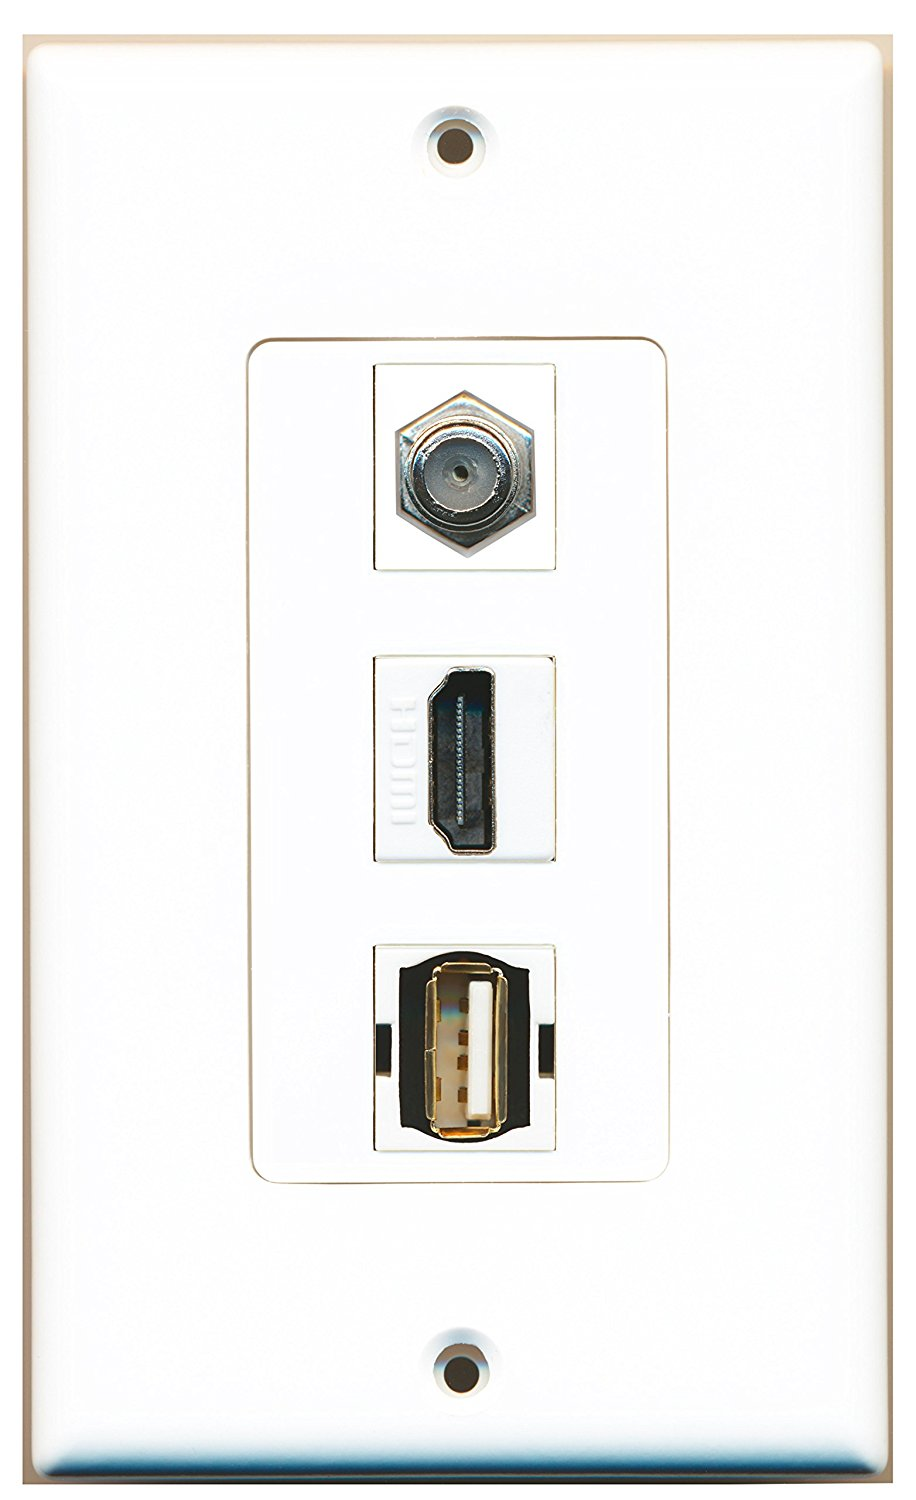 2-Pack Conwork QuickPort Decora Wall Plate Insert for 4-Port Keystone Jack